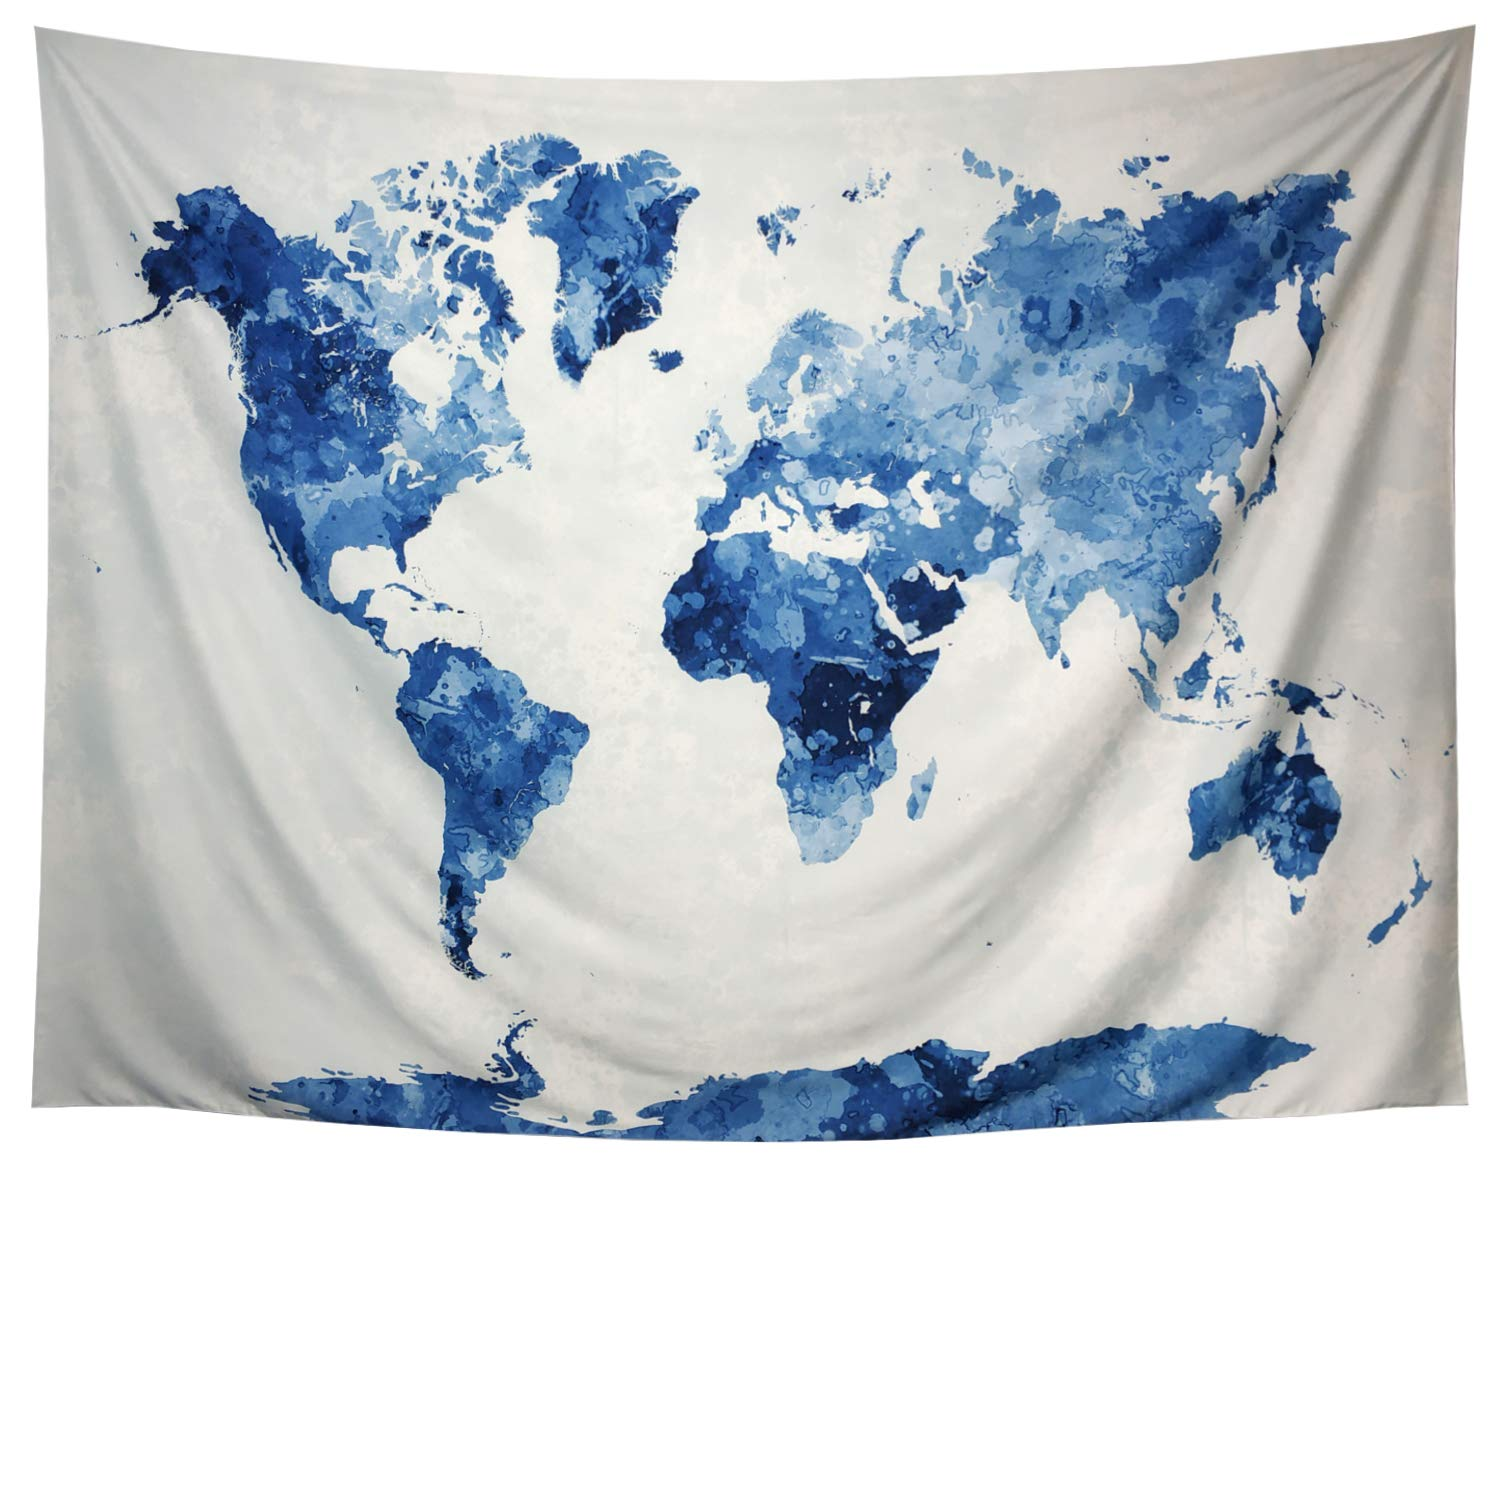 Lahashoker Blue Watercolor World Map Tapestry Splatter Abstract Painting Wall Tapestry College Dorm Tapestry Blue Wall Hanging Art for Living Room Bedroom Dorm Home Decor